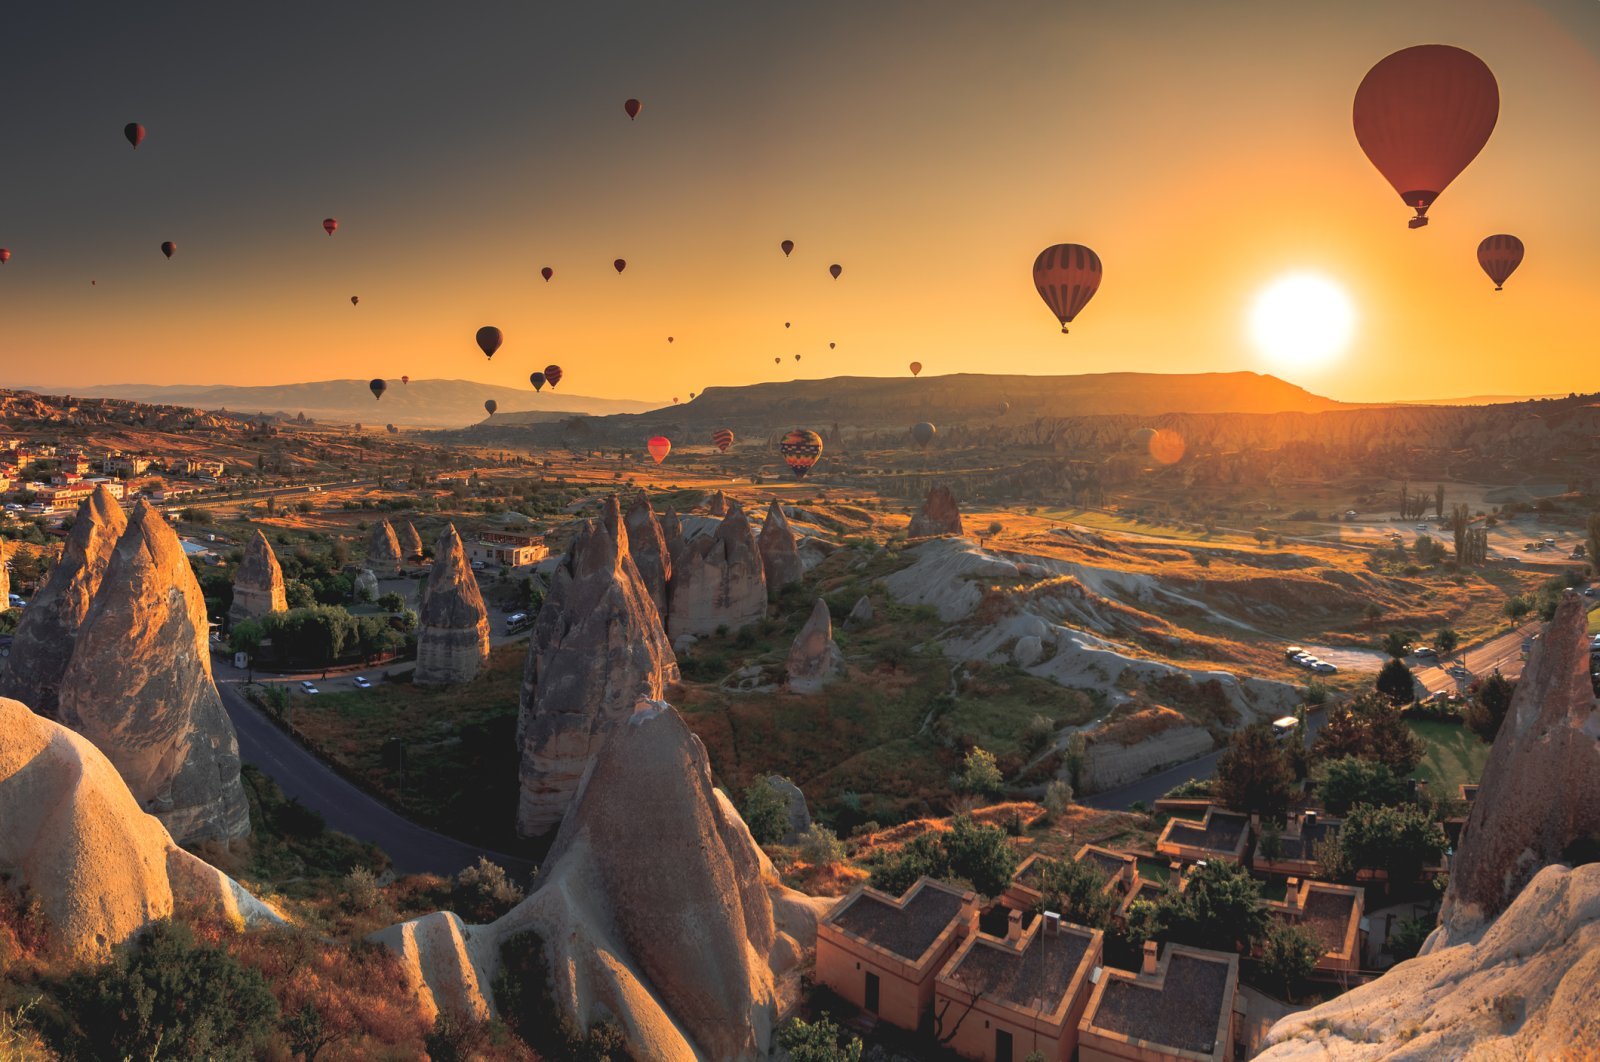 The first edition of the Cappadocia Film Festival was scheduled for May 29 to June 3, 2020. (iStock Photo)